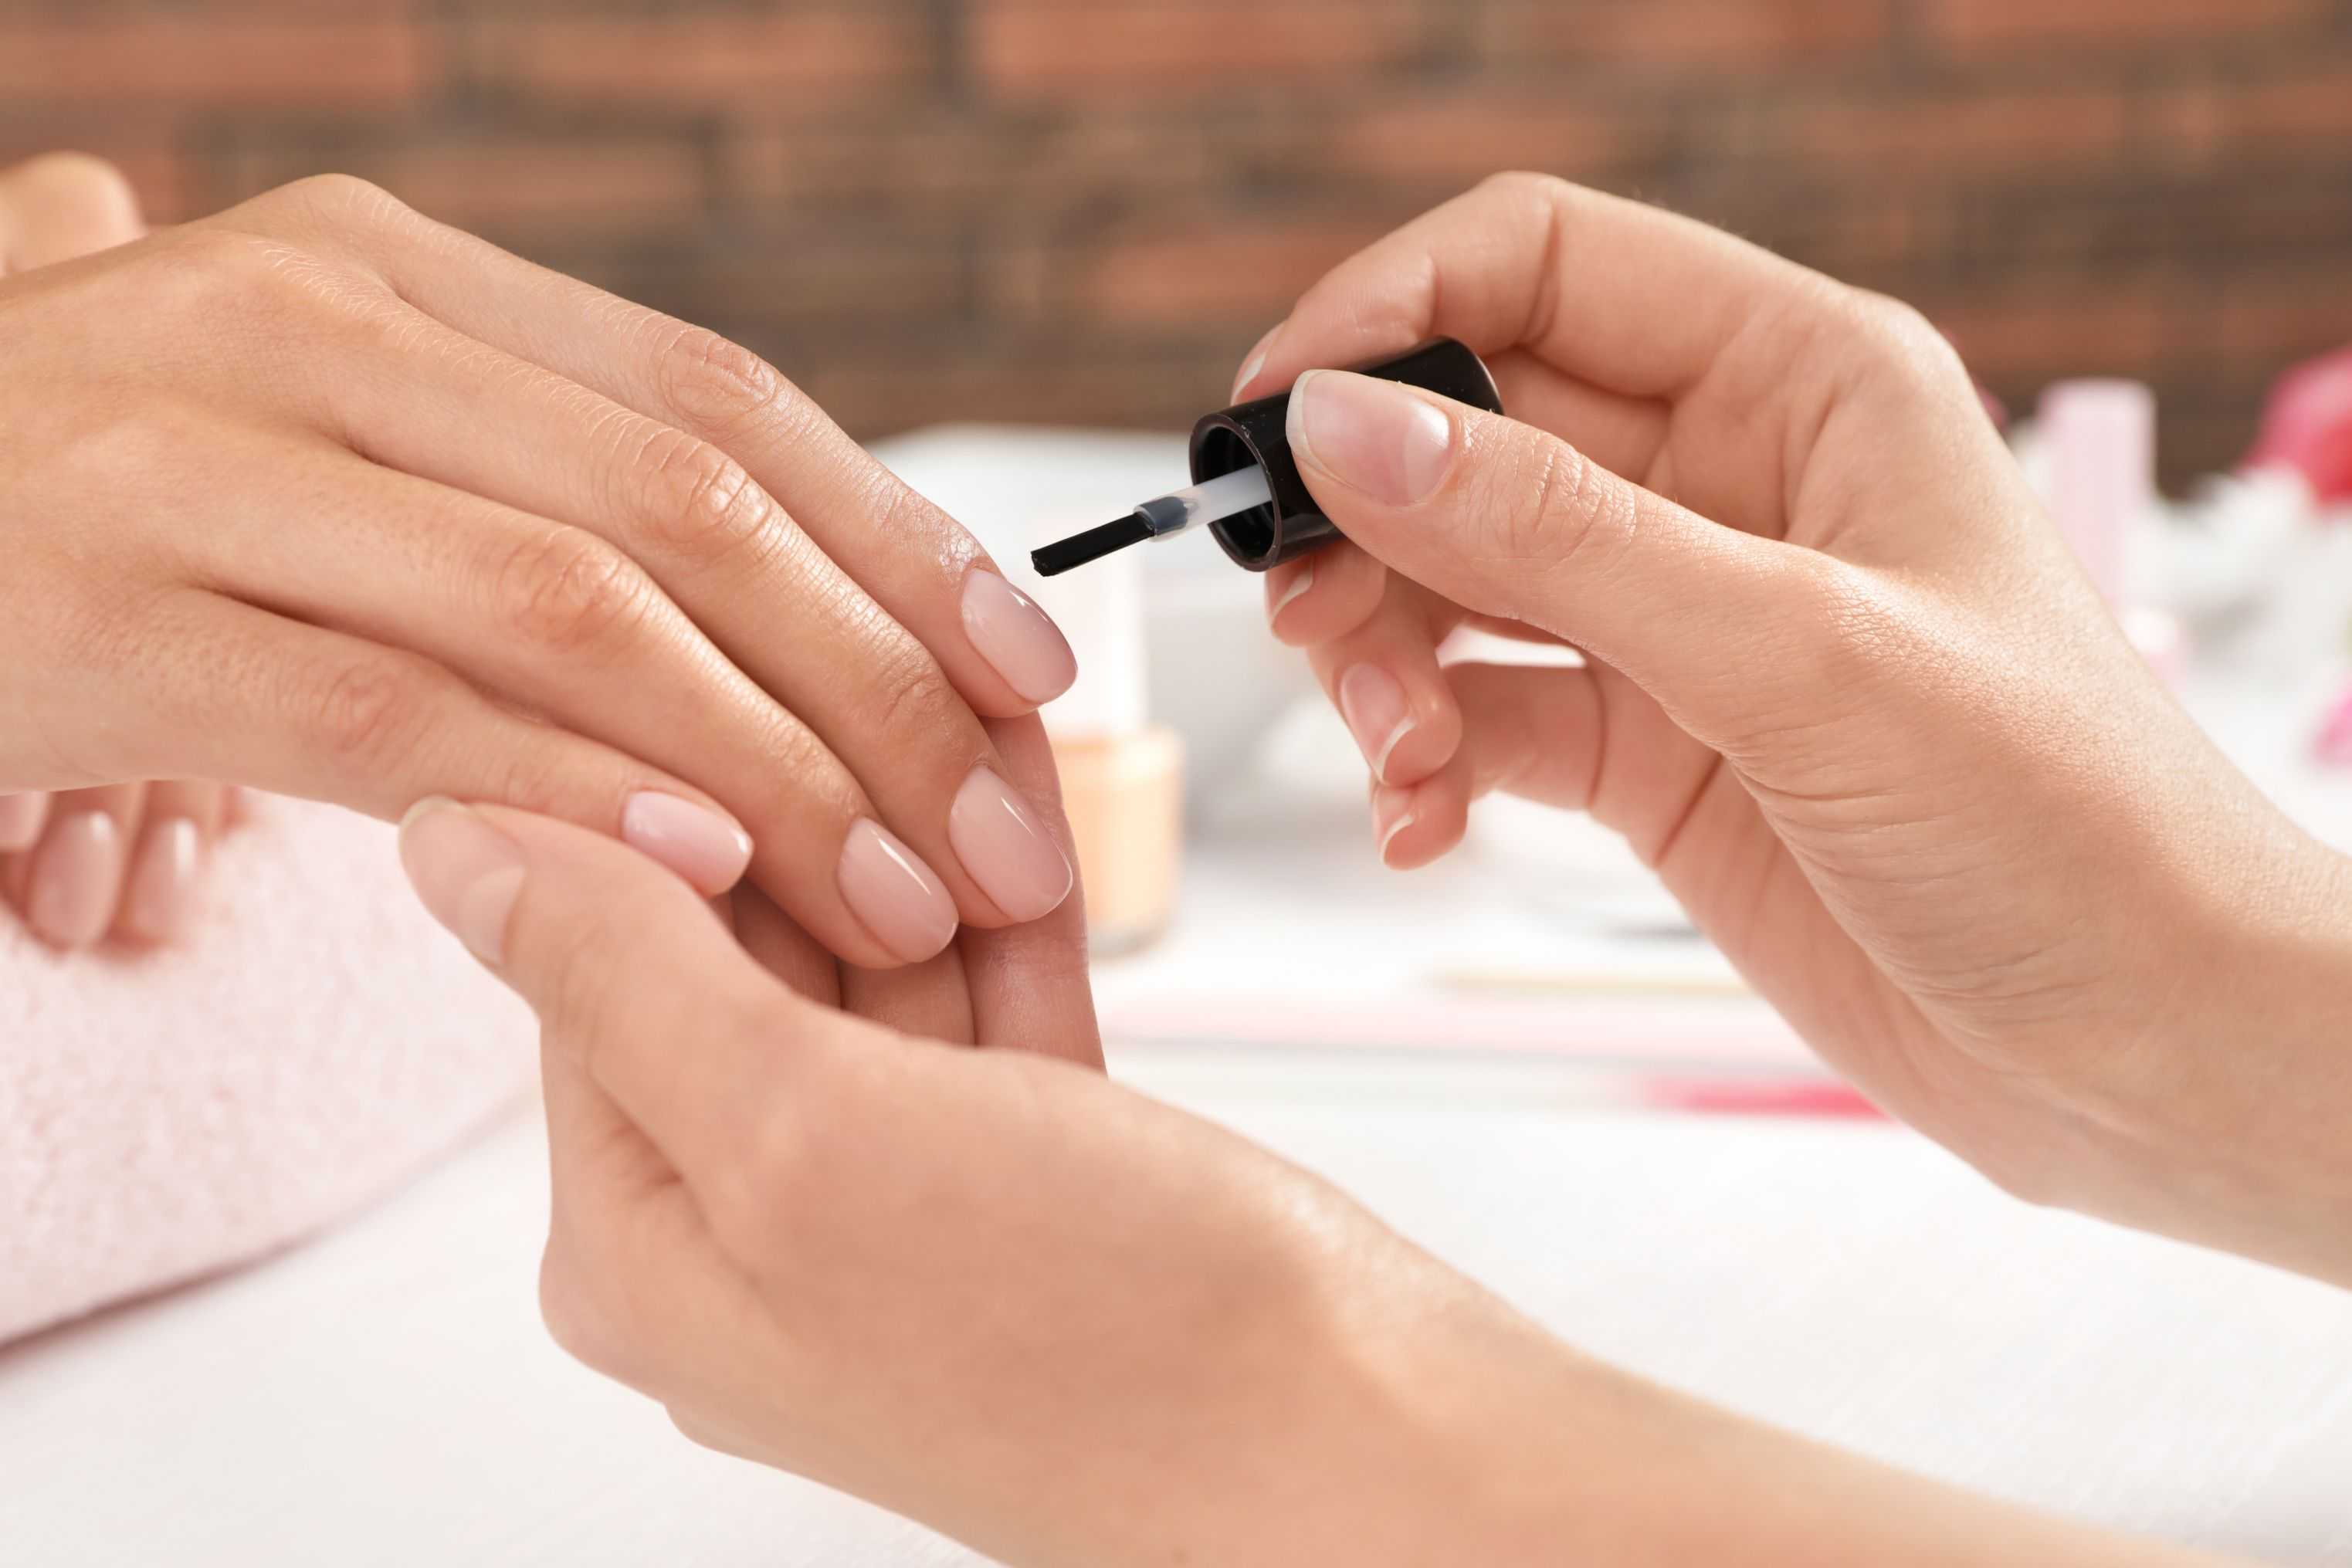 Gel Manicure with Return Soak Off + Classic Pedicure for 1 Person (1 session)